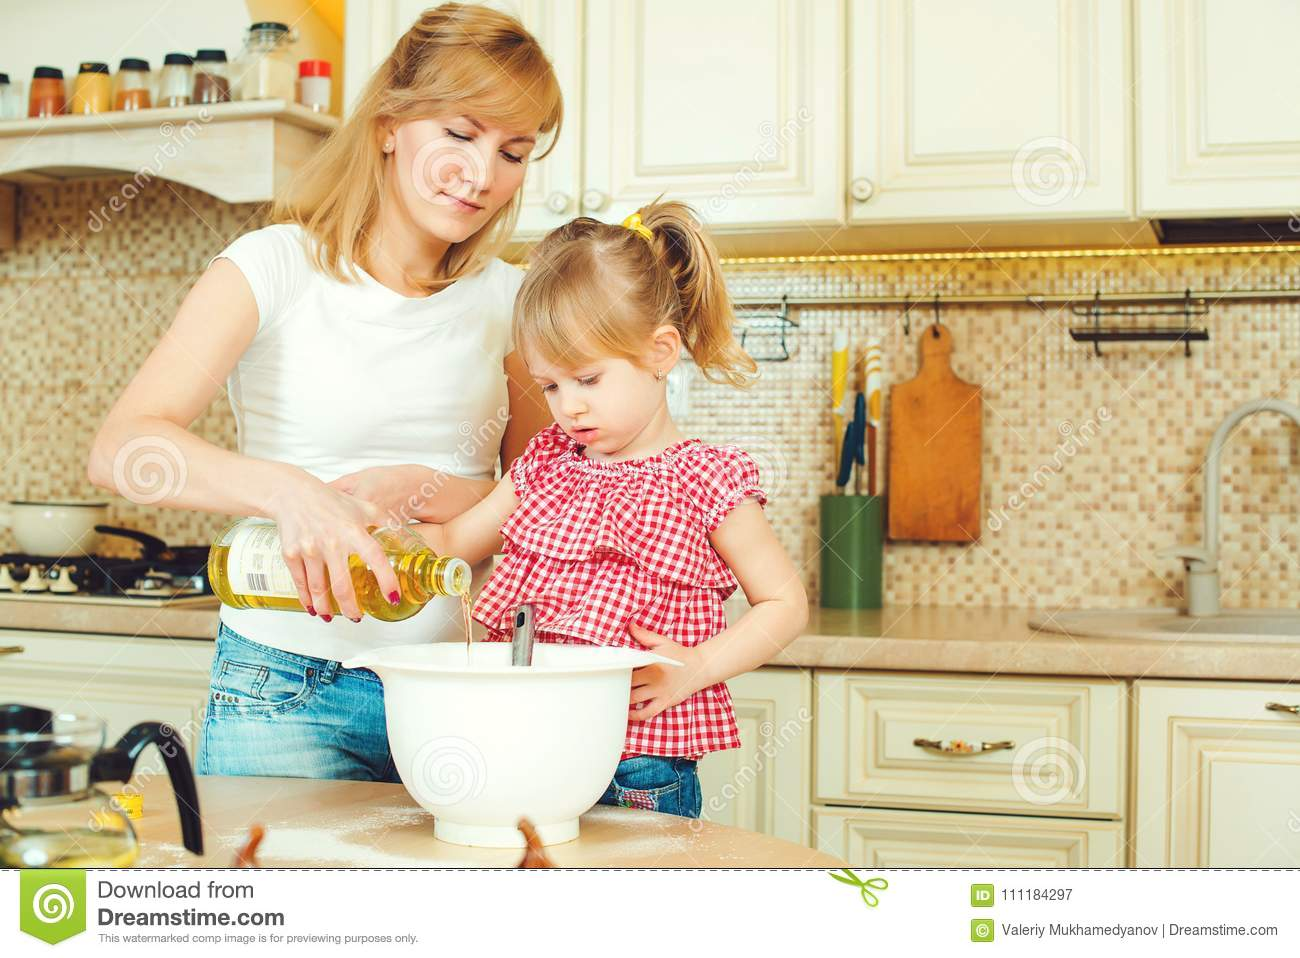 Young mother and cute little daughter preparing the dough, bake cookies and having fun in the kitchen.